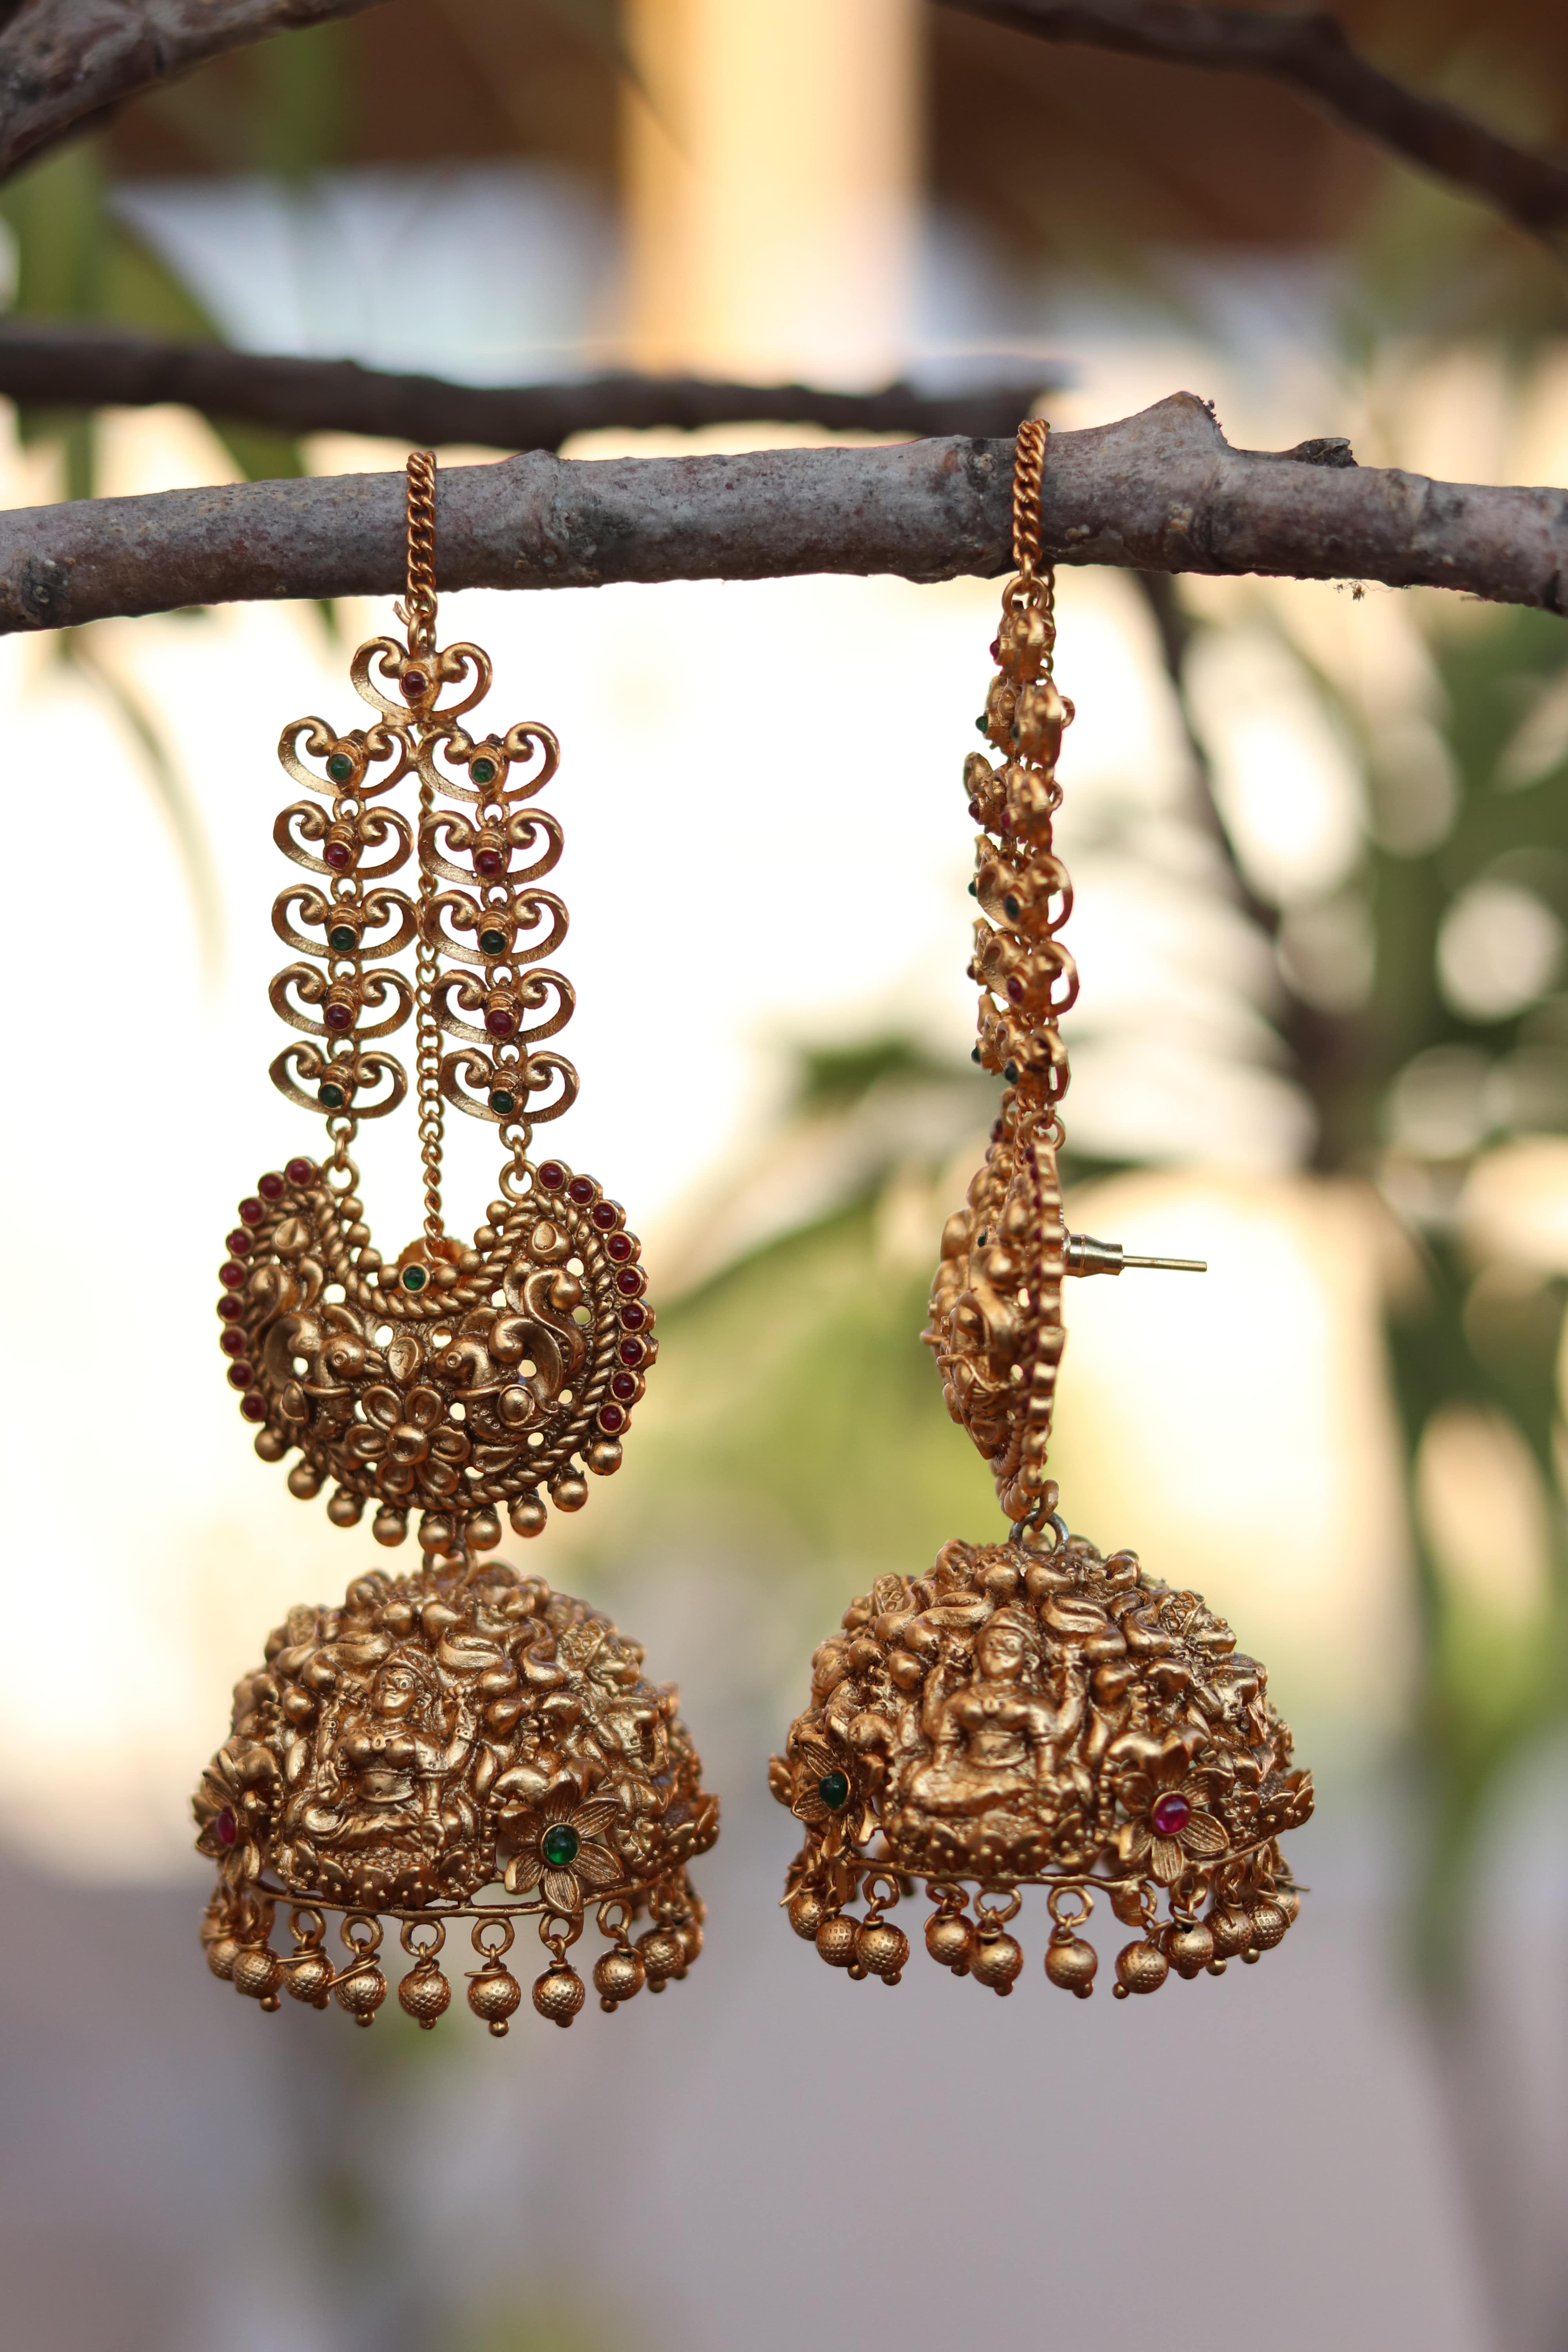 Big-Bridal-Antique-Jhumkas-With-Ear-Chains-01